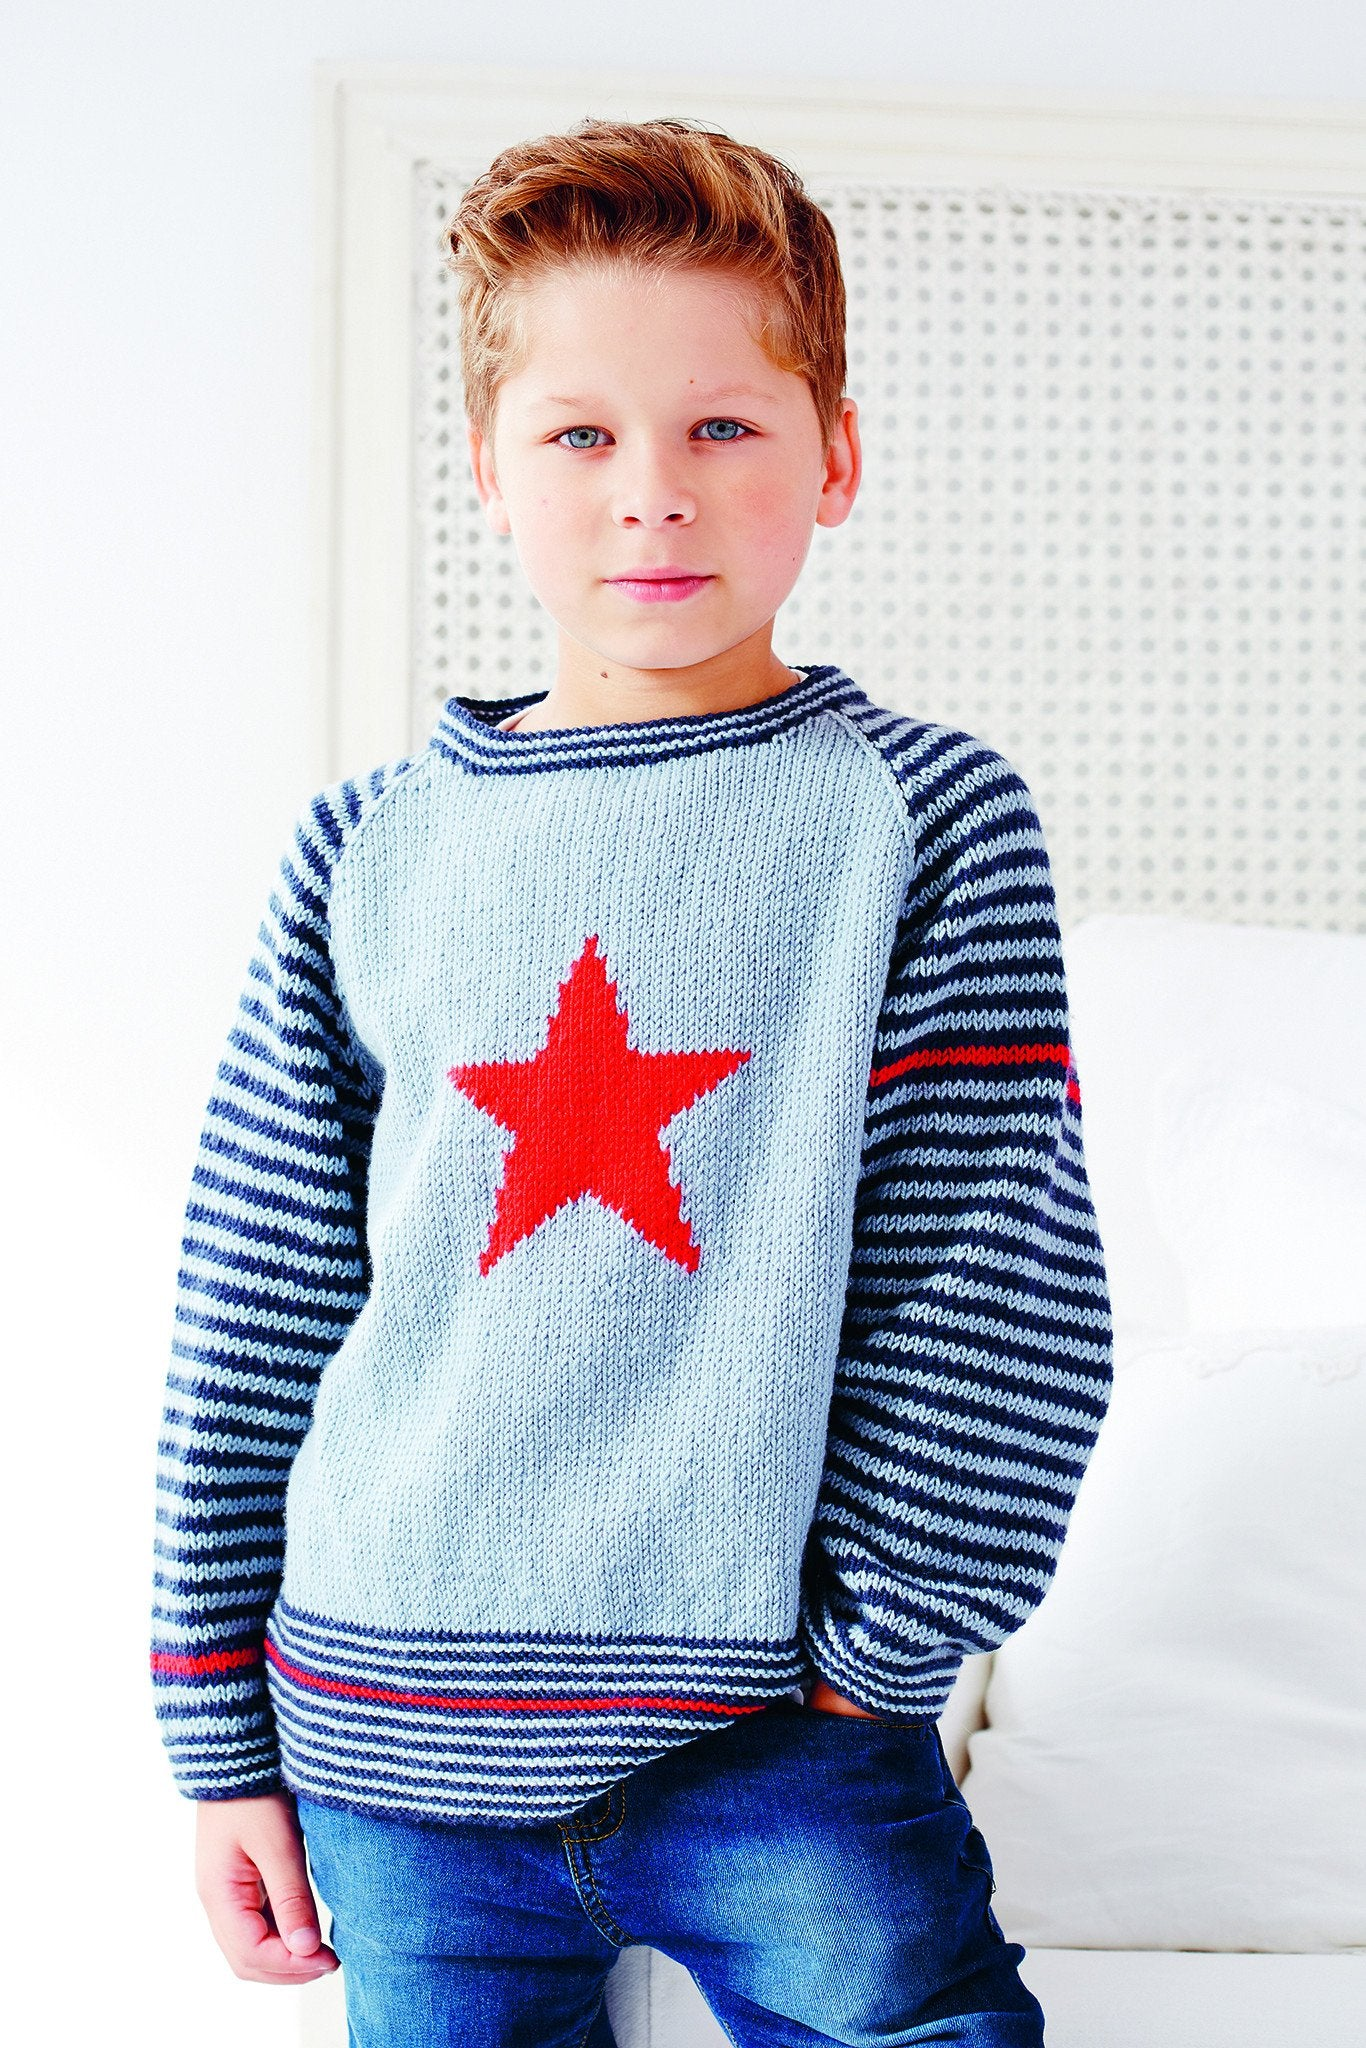 Knitting Networkcouk Freebie : Boys jumper with stars and stripes knitting pattern the